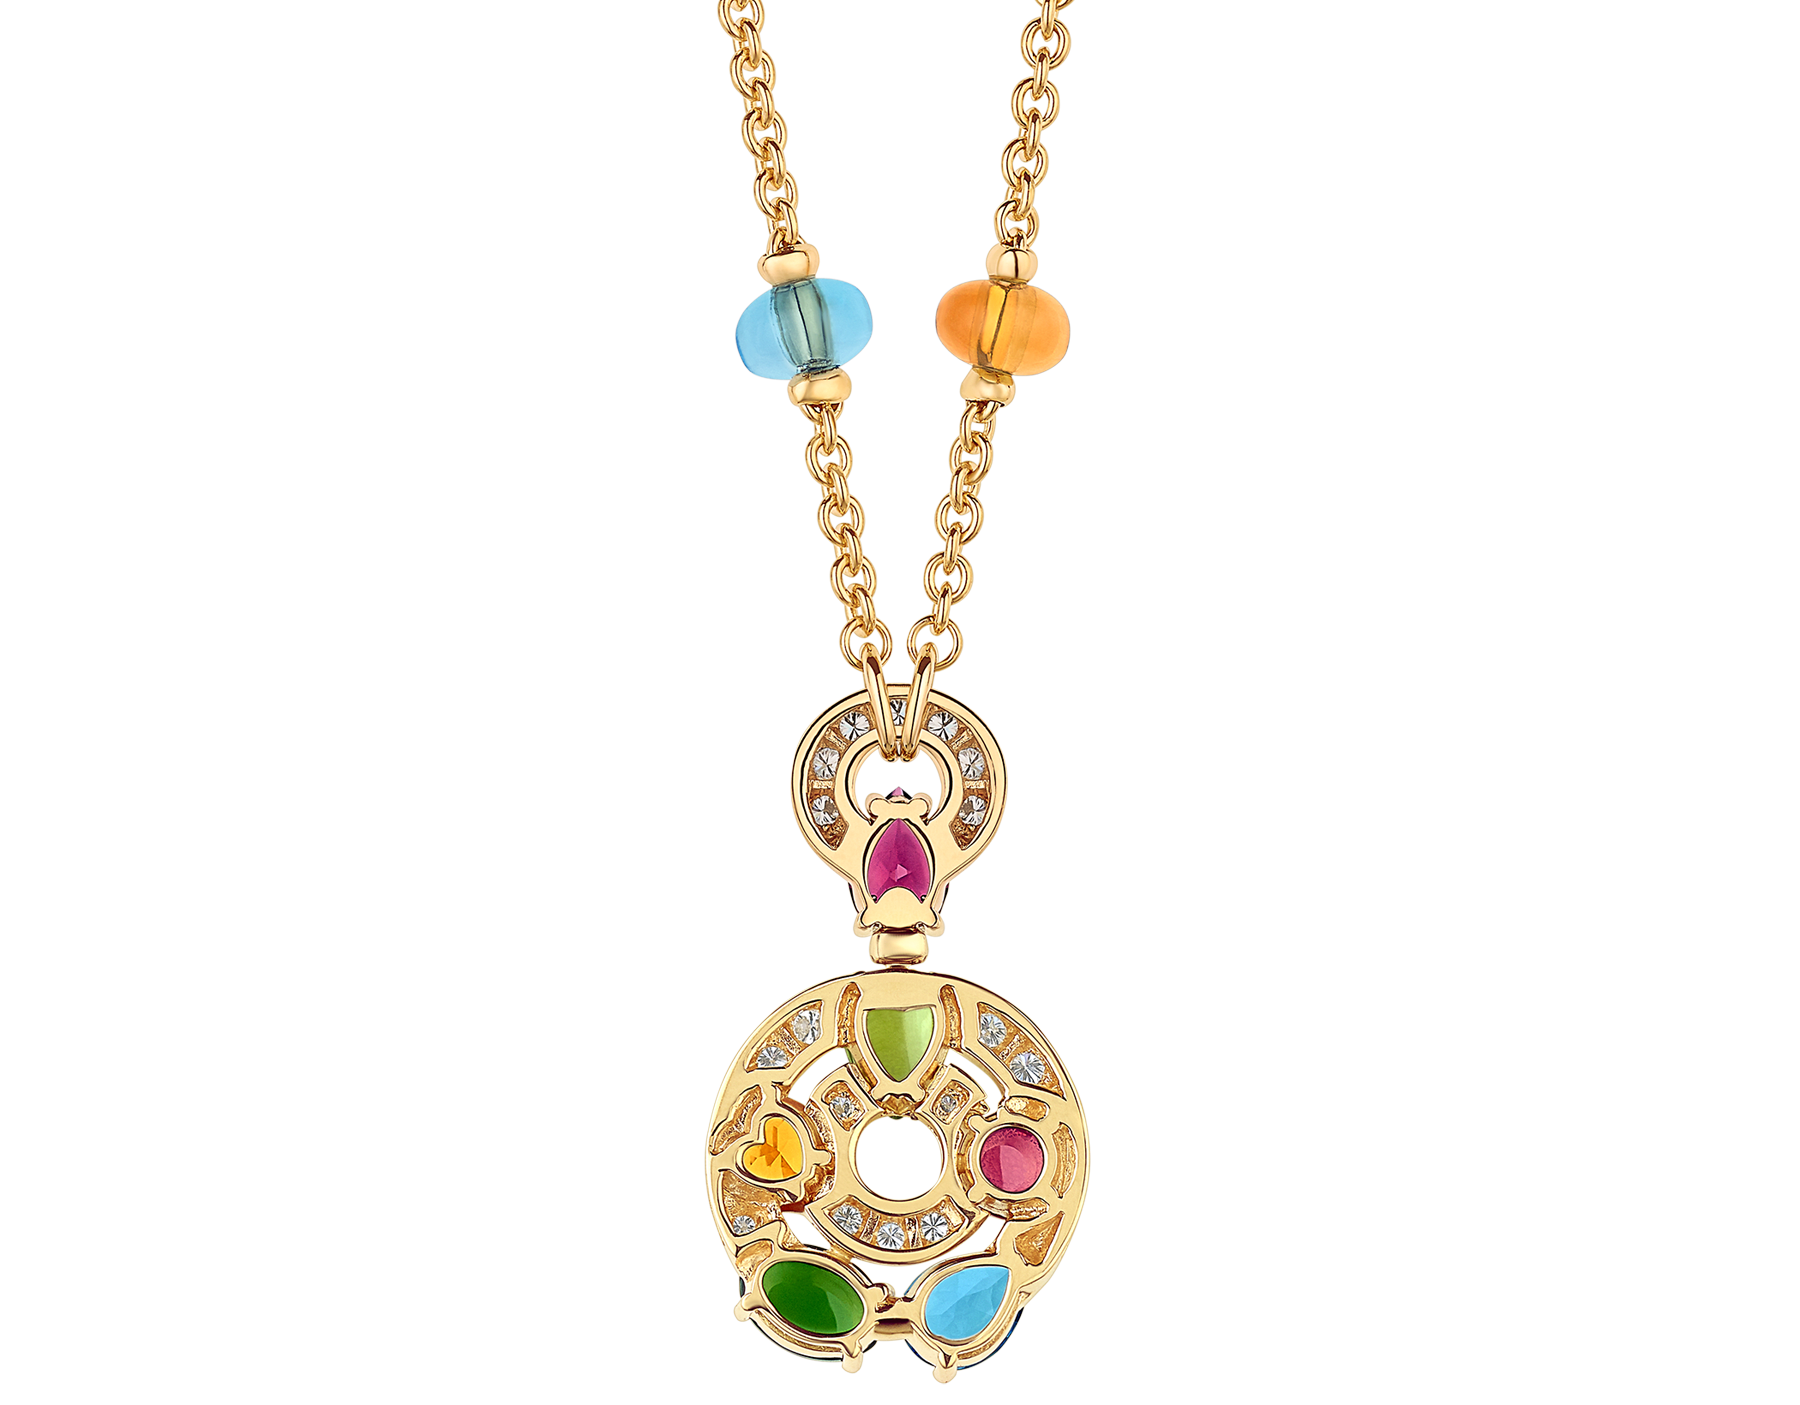 Astrale 18 kt yellow gold large pendant necklace set with blue topazes, amethysts, green tourmalines, peridots, citrine quartz, rhodolite garnets and pavé diamonds 339139 image 4